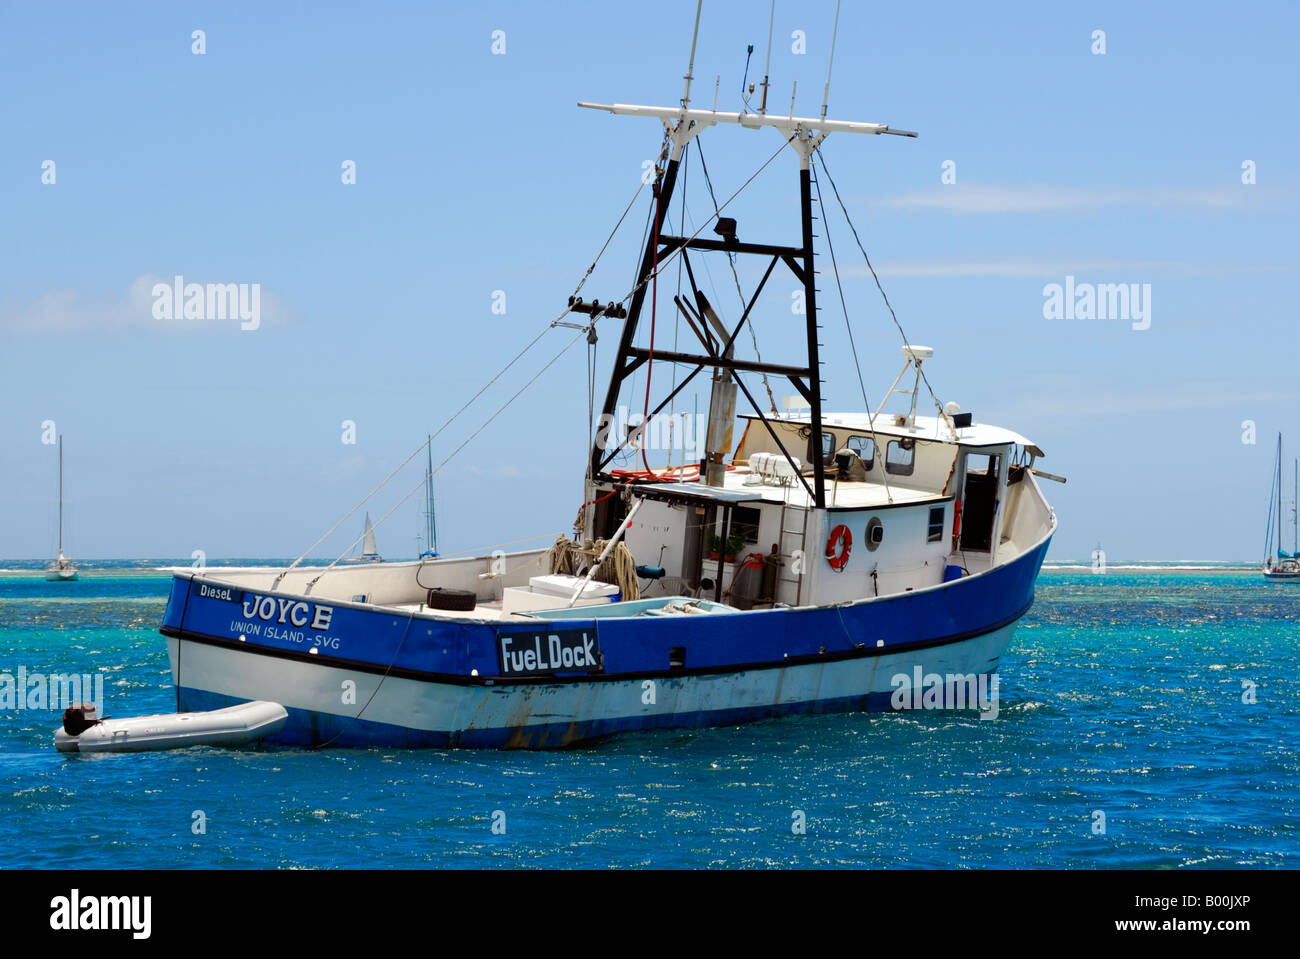 A Former Commercial Fishing Boat Now Used To Sell Diesel In Clifton Stock Photo Alamy